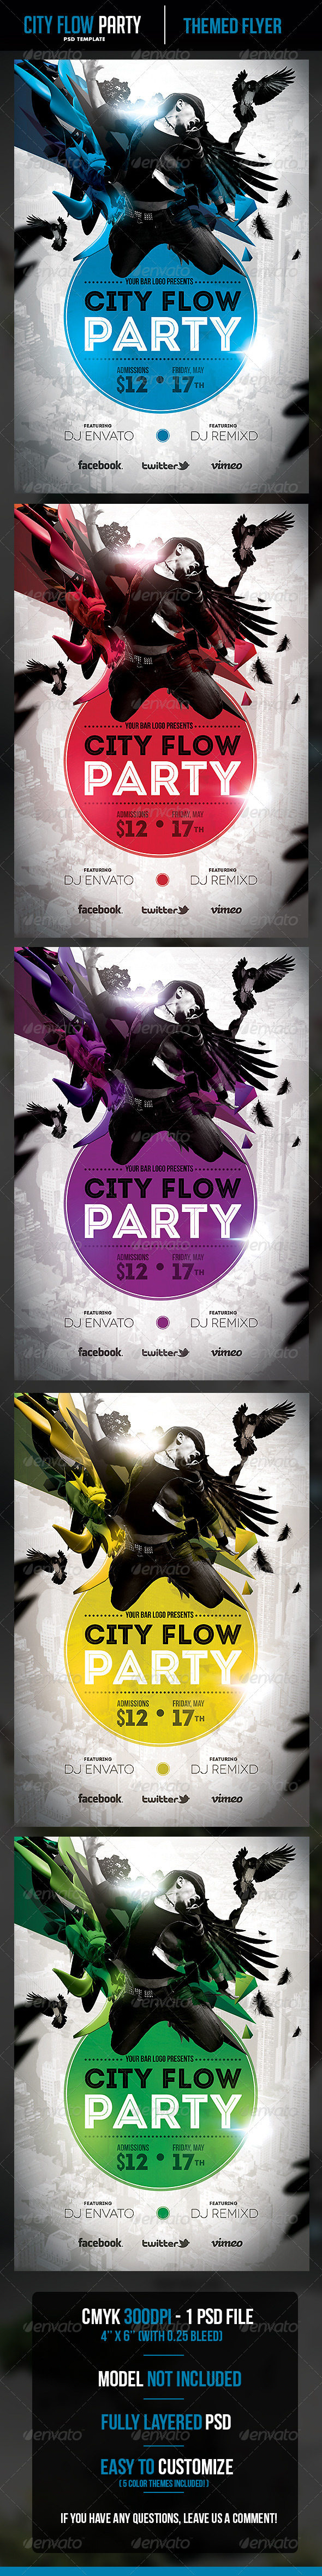 City Flow Party Flyer Template - Clubs & Parties Events